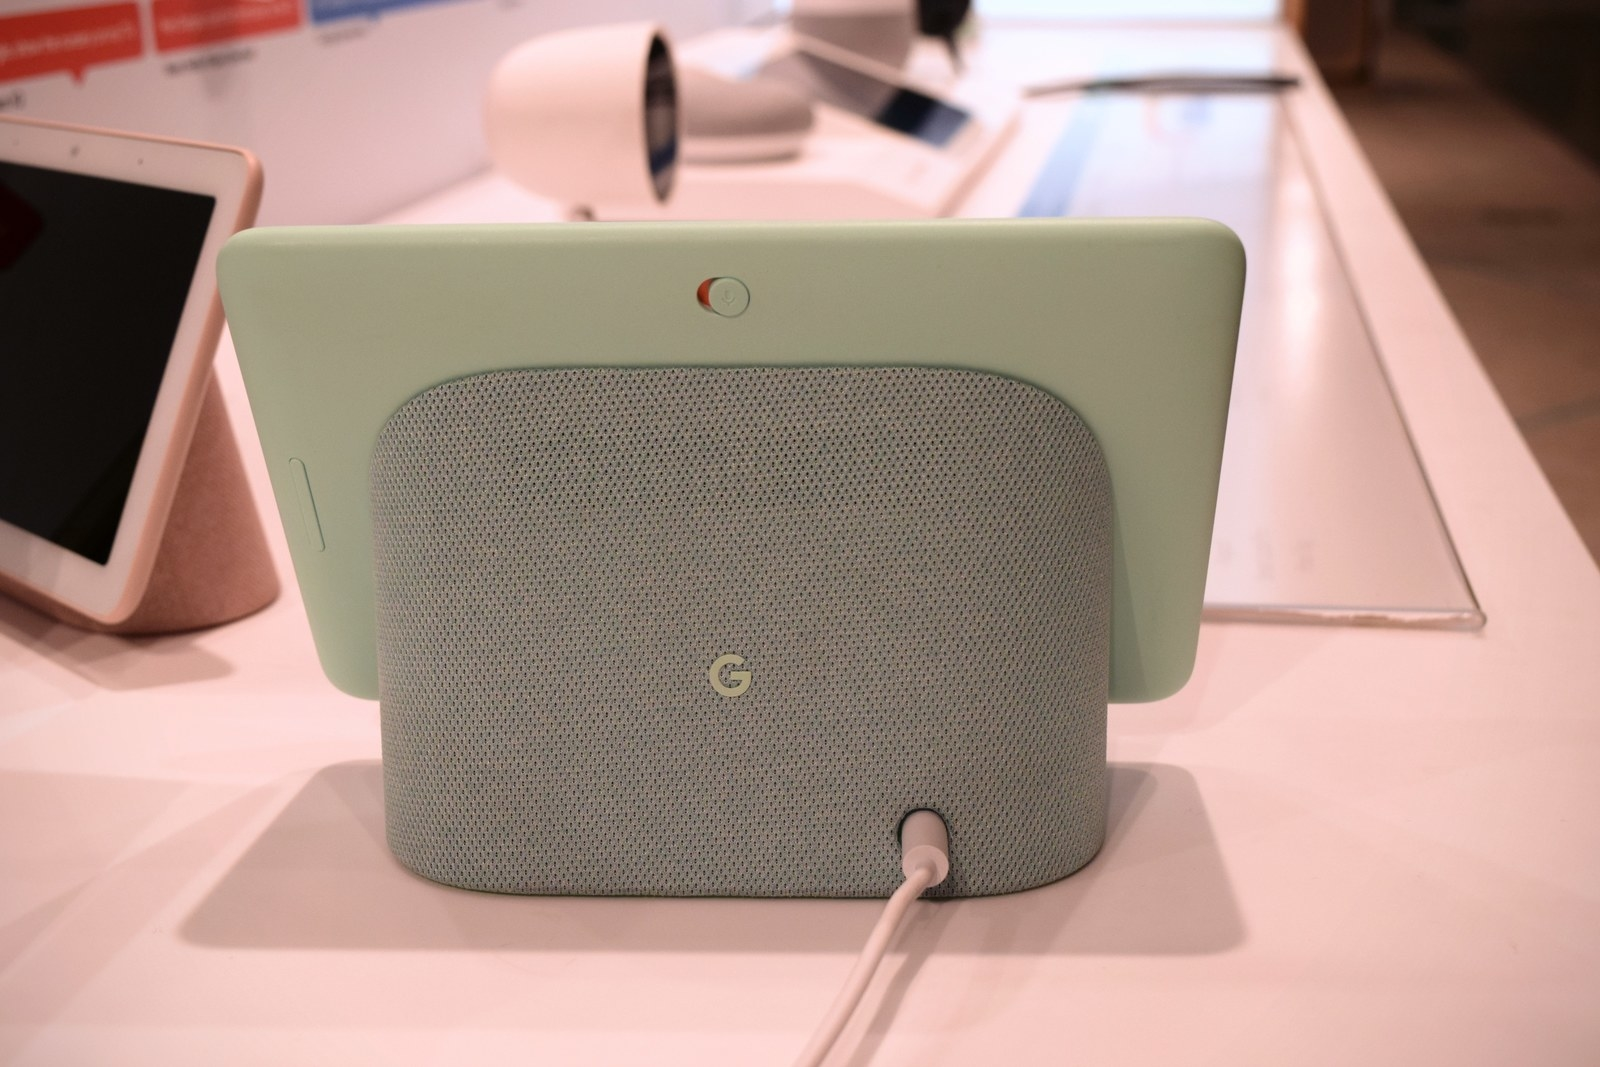 A switch on the back of the Google Home Hub disables the device's microphone.